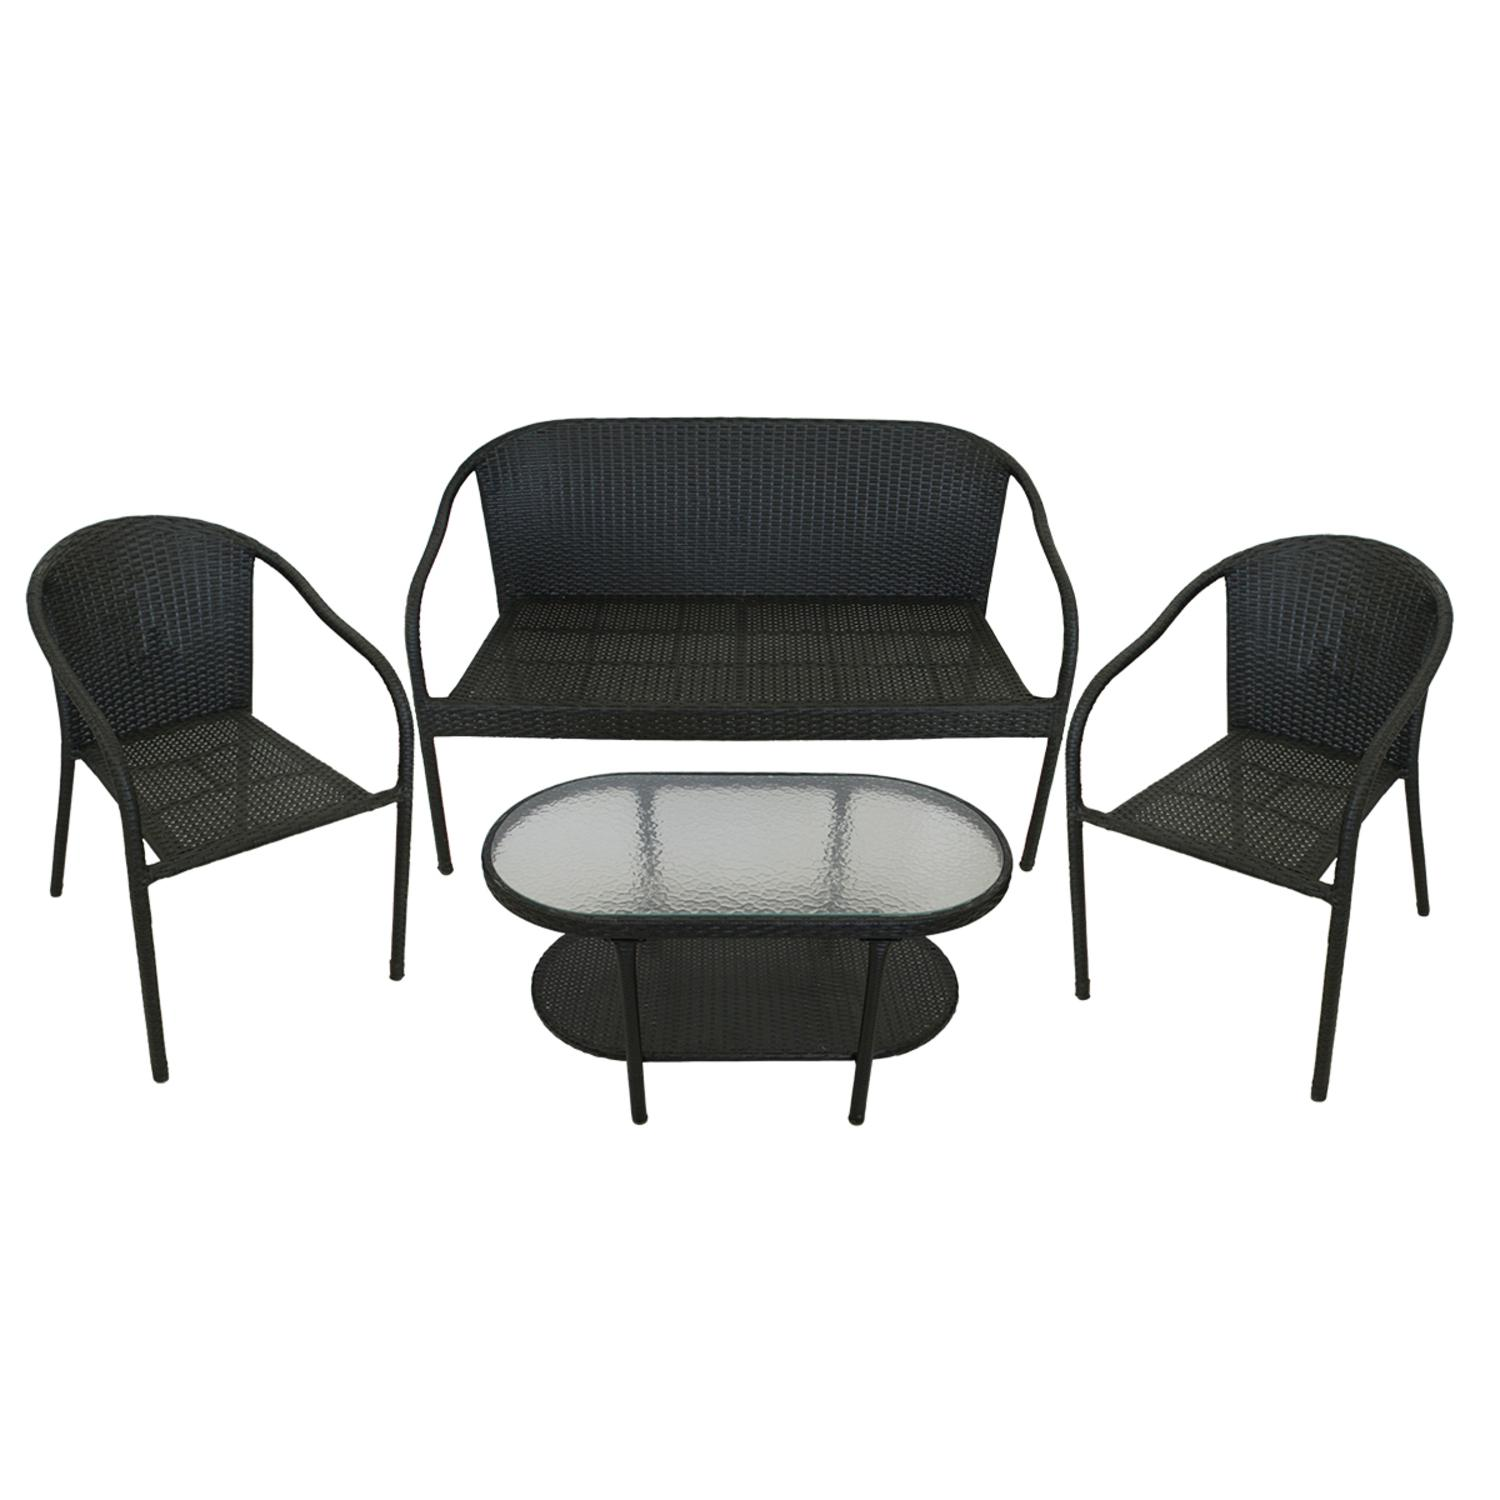 4-Piece Black Resin Wicker Patio Furniture Set - Loveseat, 2 Chairs & Glass Top Table